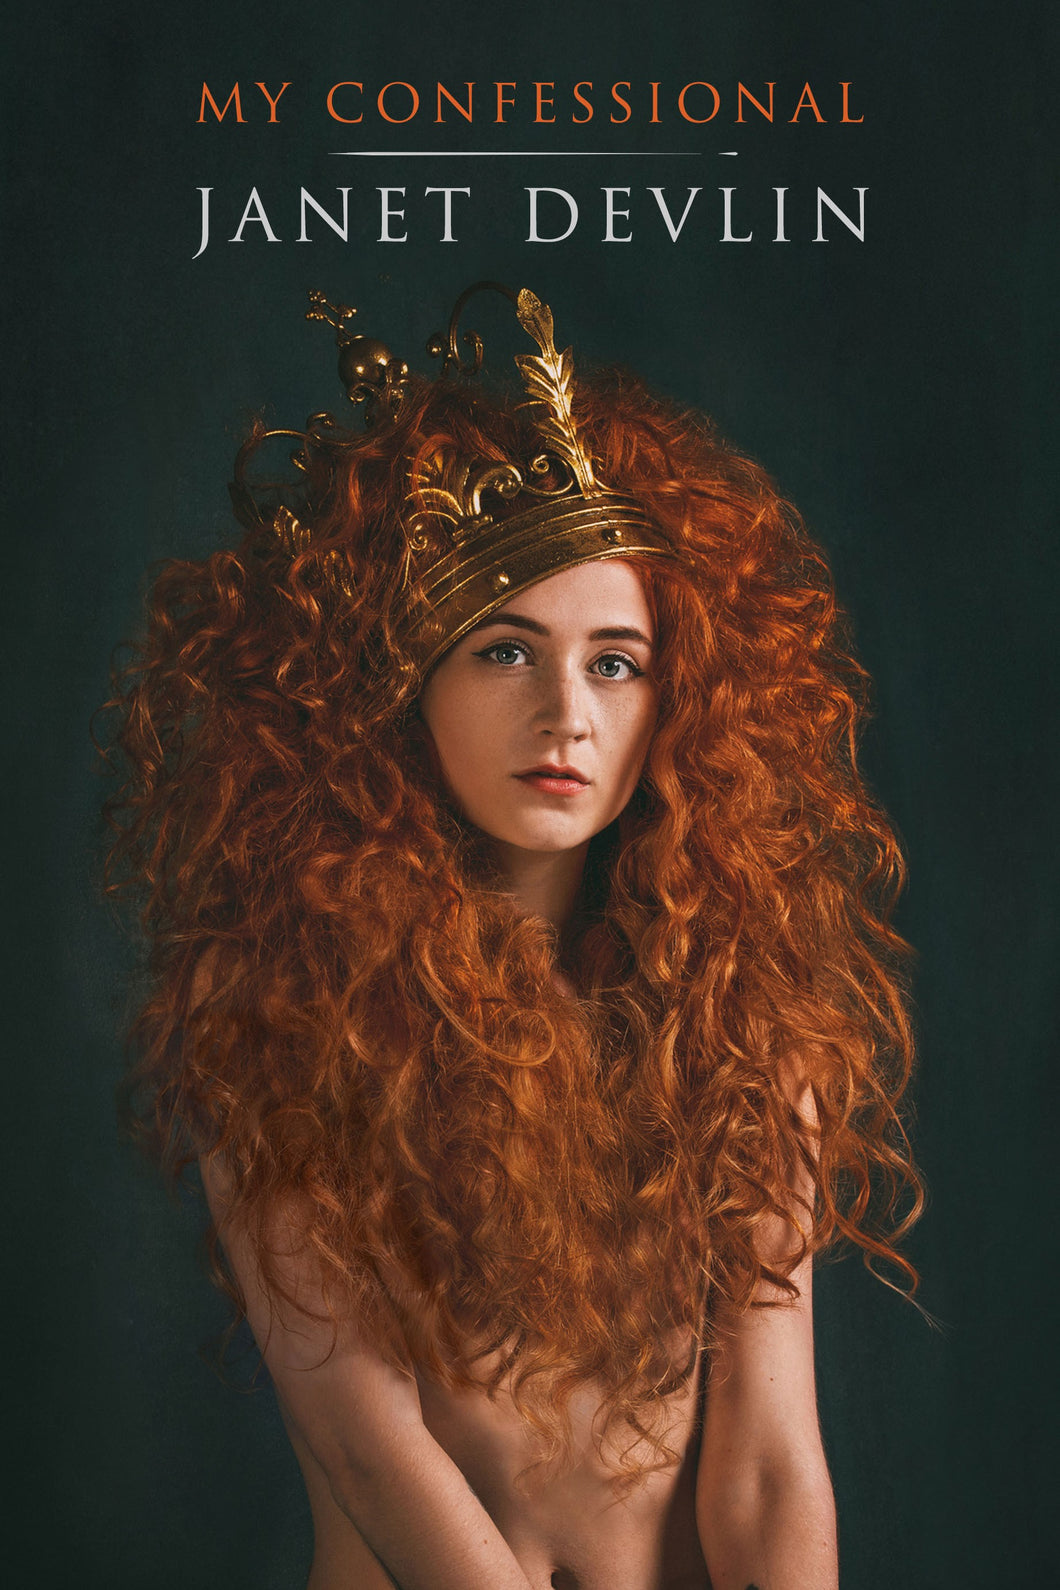 My Confessional: Janet Devlin